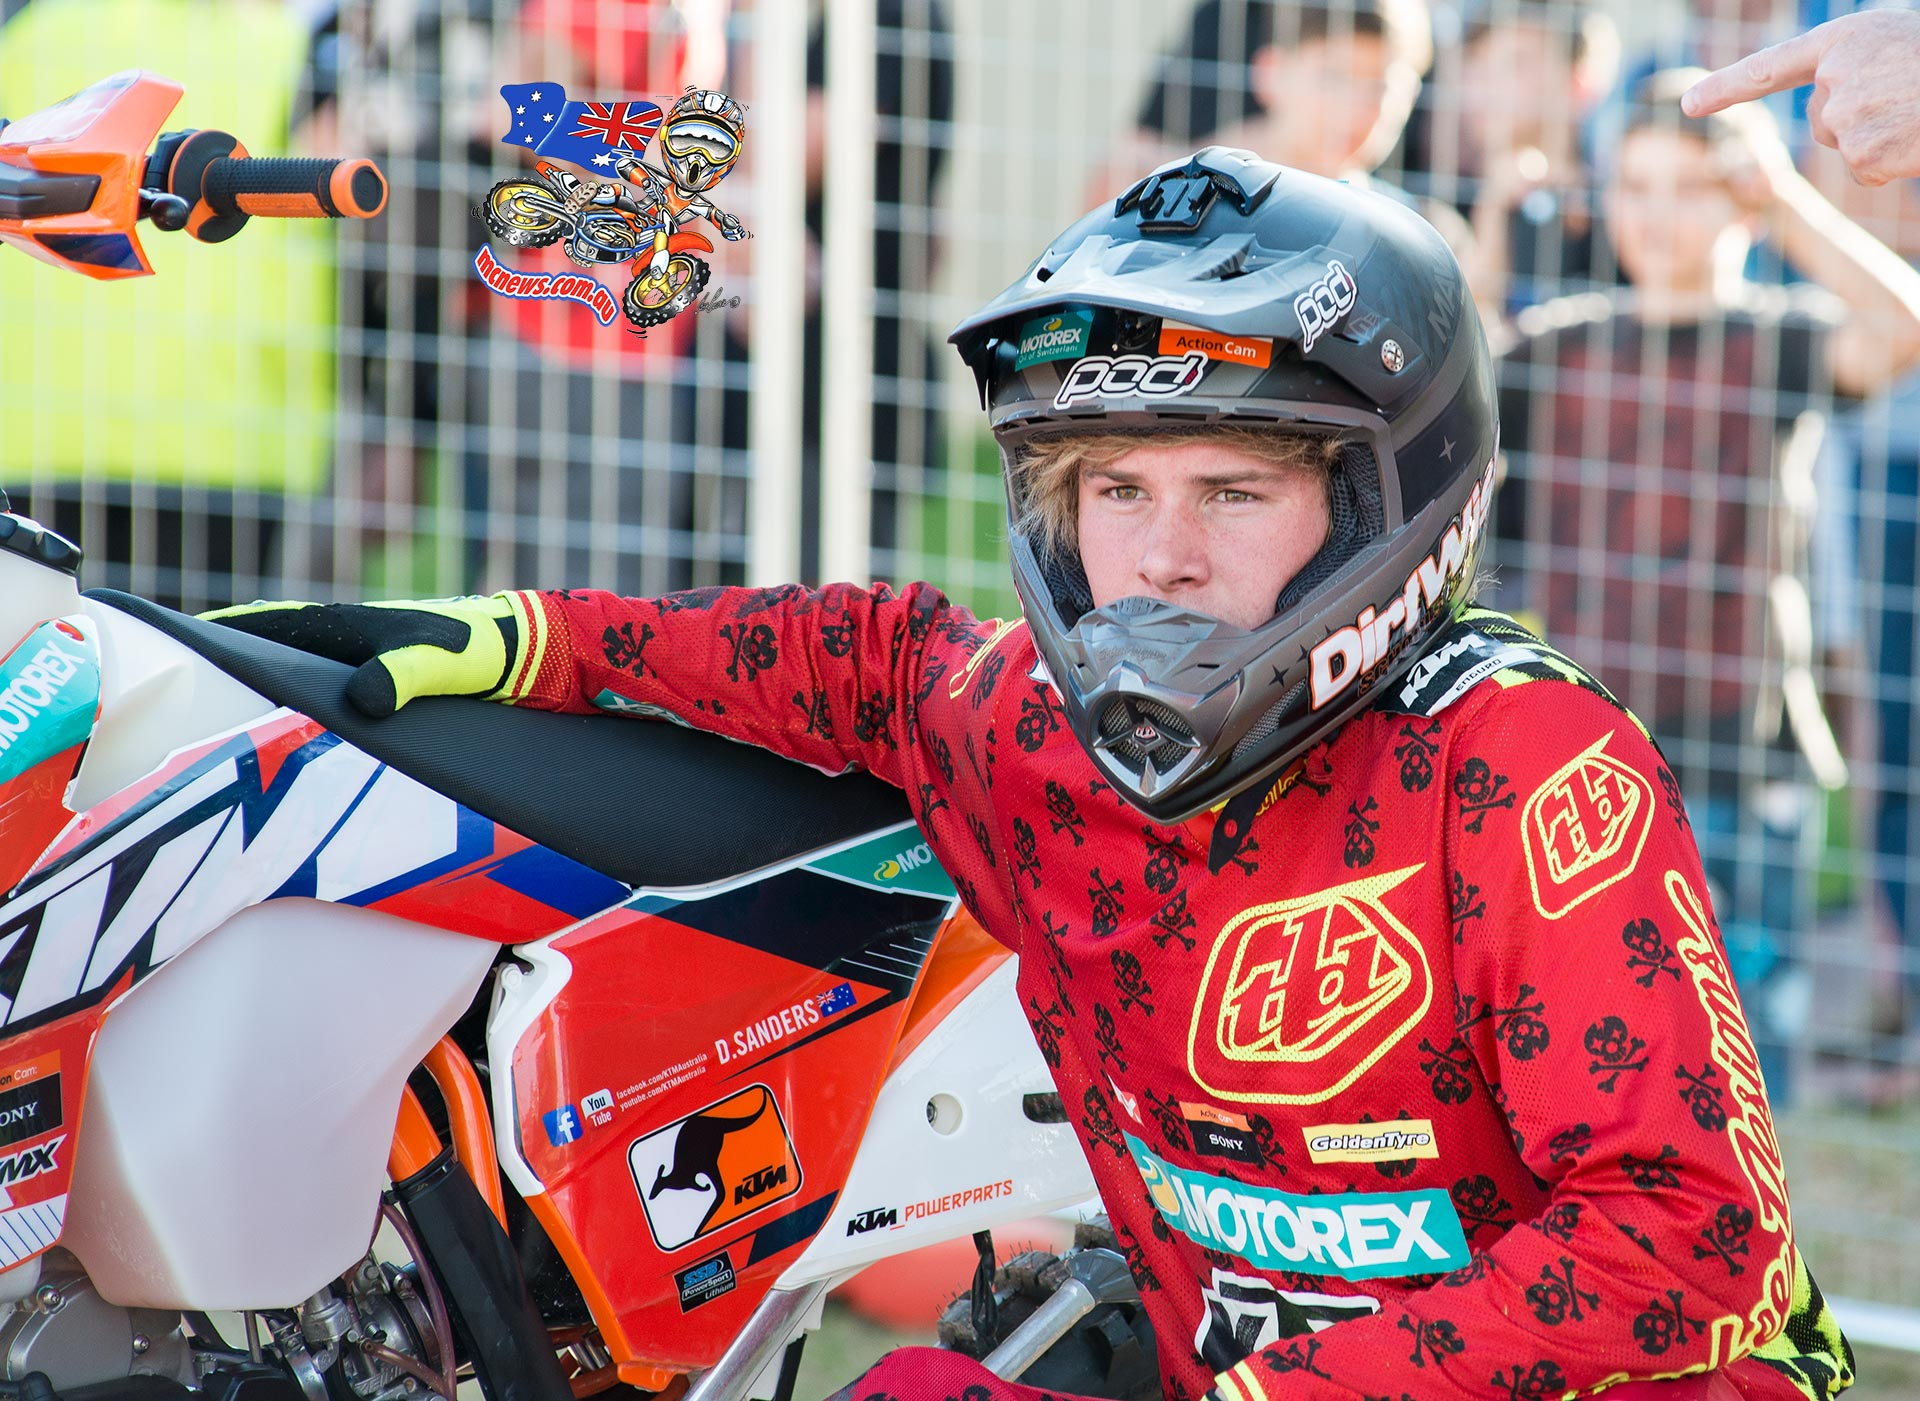 Perth International Enduro Cross 2015 - Daniel Sanders